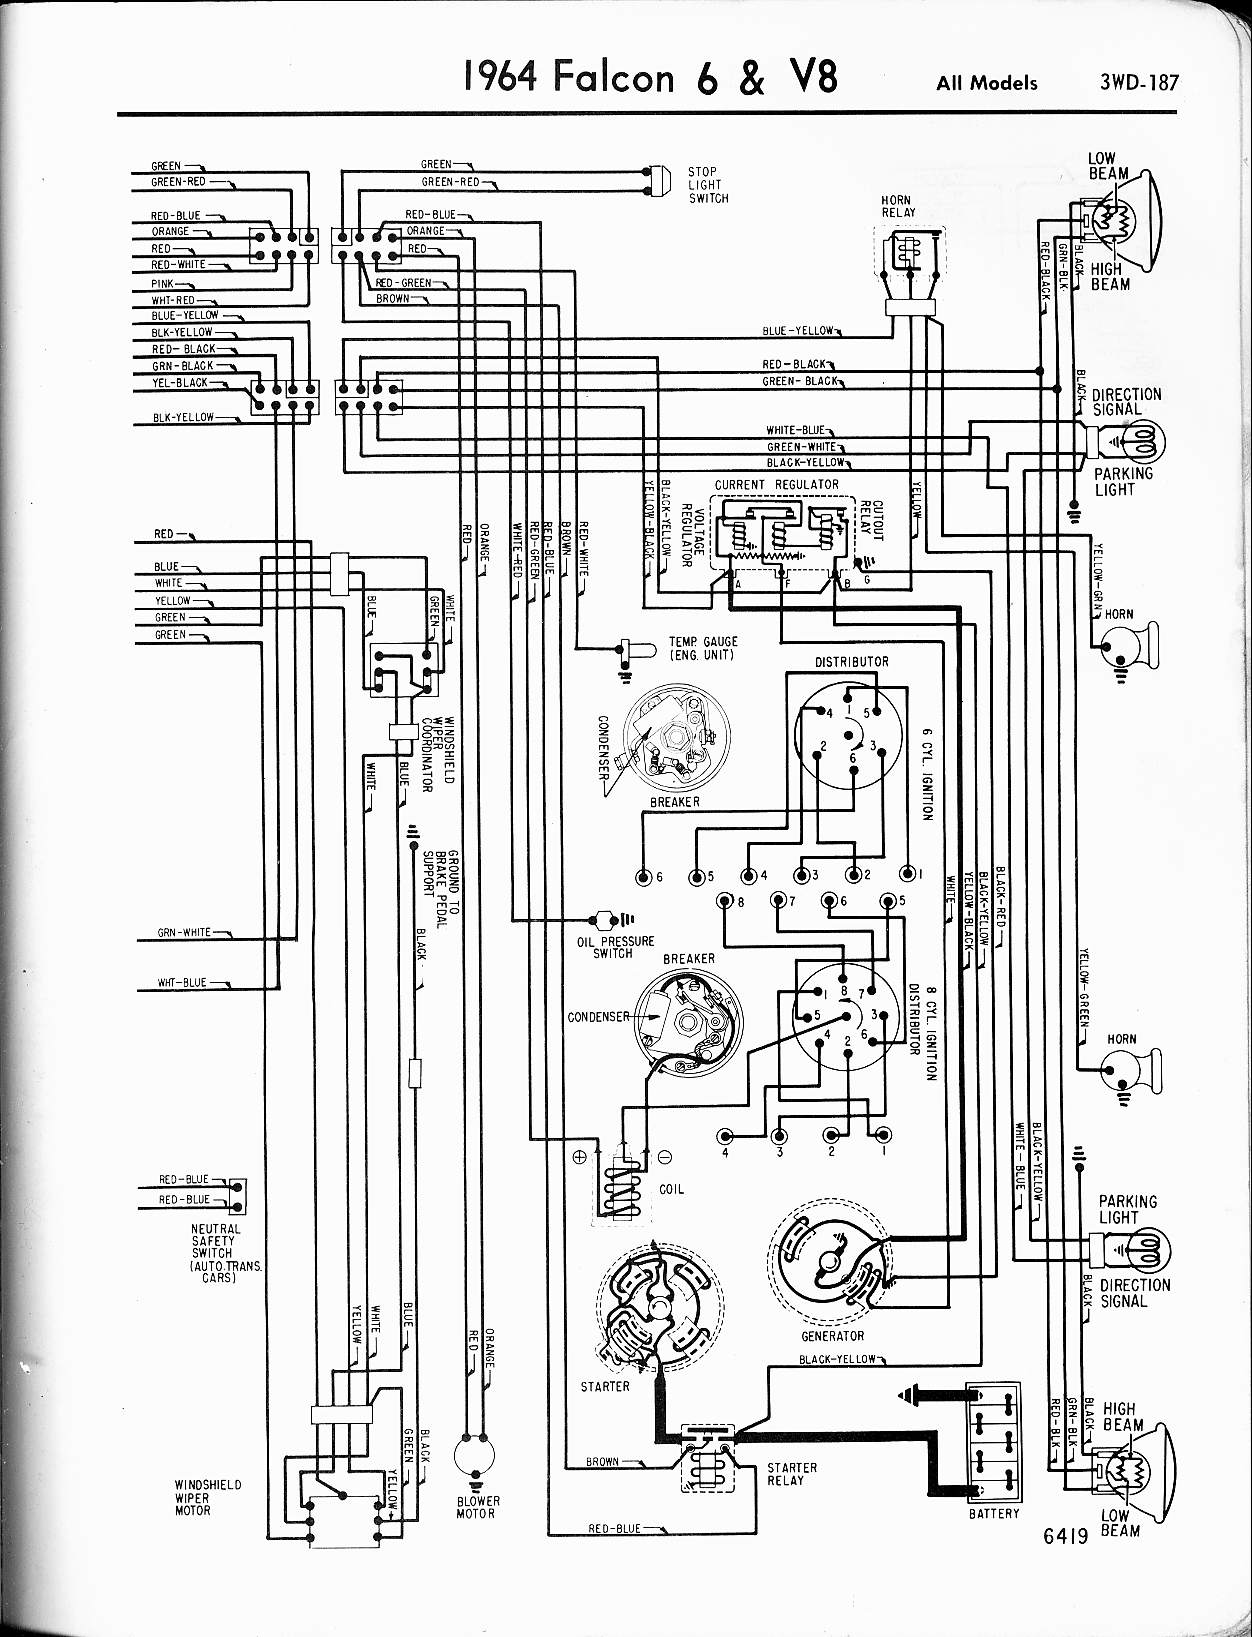 MWire5765 187 57 65 ford wiring diagrams ford falcon wiring diagram at gsmx.co